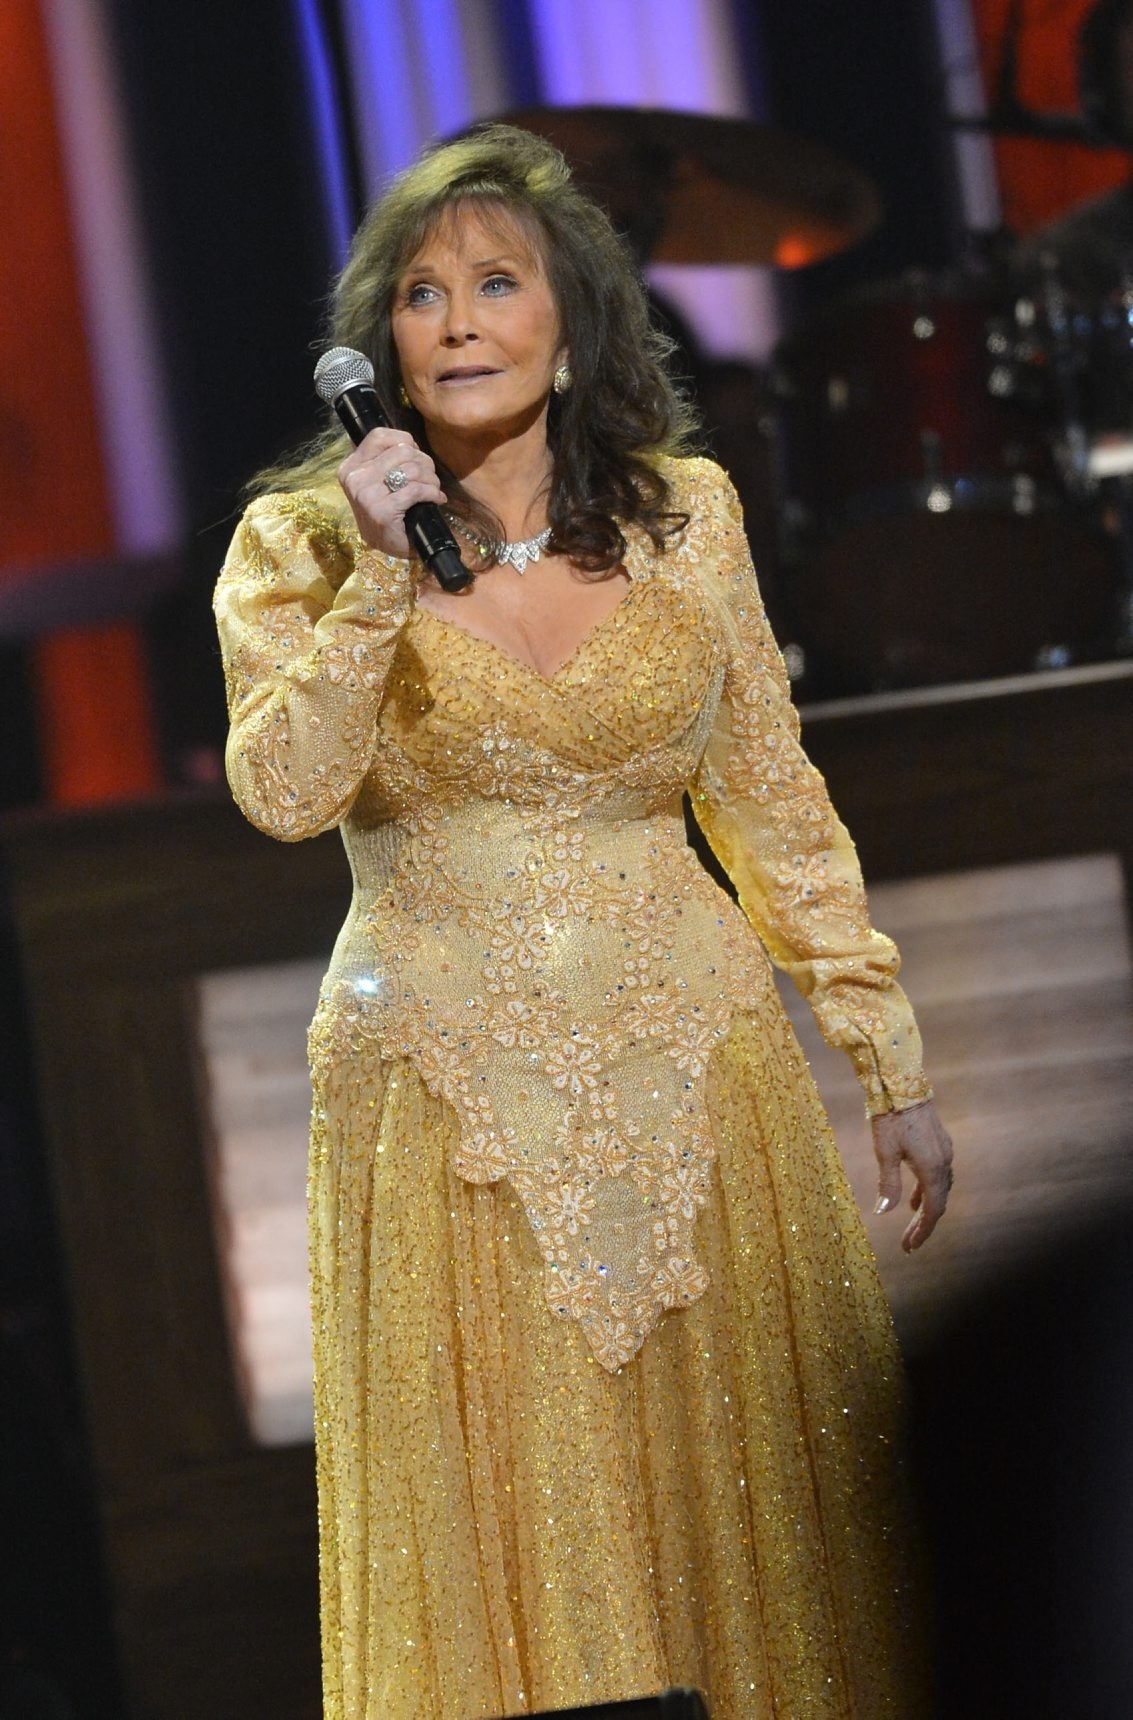 NASHVILLE, TN – SEPTEMBER 25:  Loretta Lynn performs during the celebration of Loretta Lynn's 50th Opry Anniversary at The Grand Ole Opry on September 25, 2012 in Nashville, Tennessee.  (Photo by Rick Diamond/Getty Images)